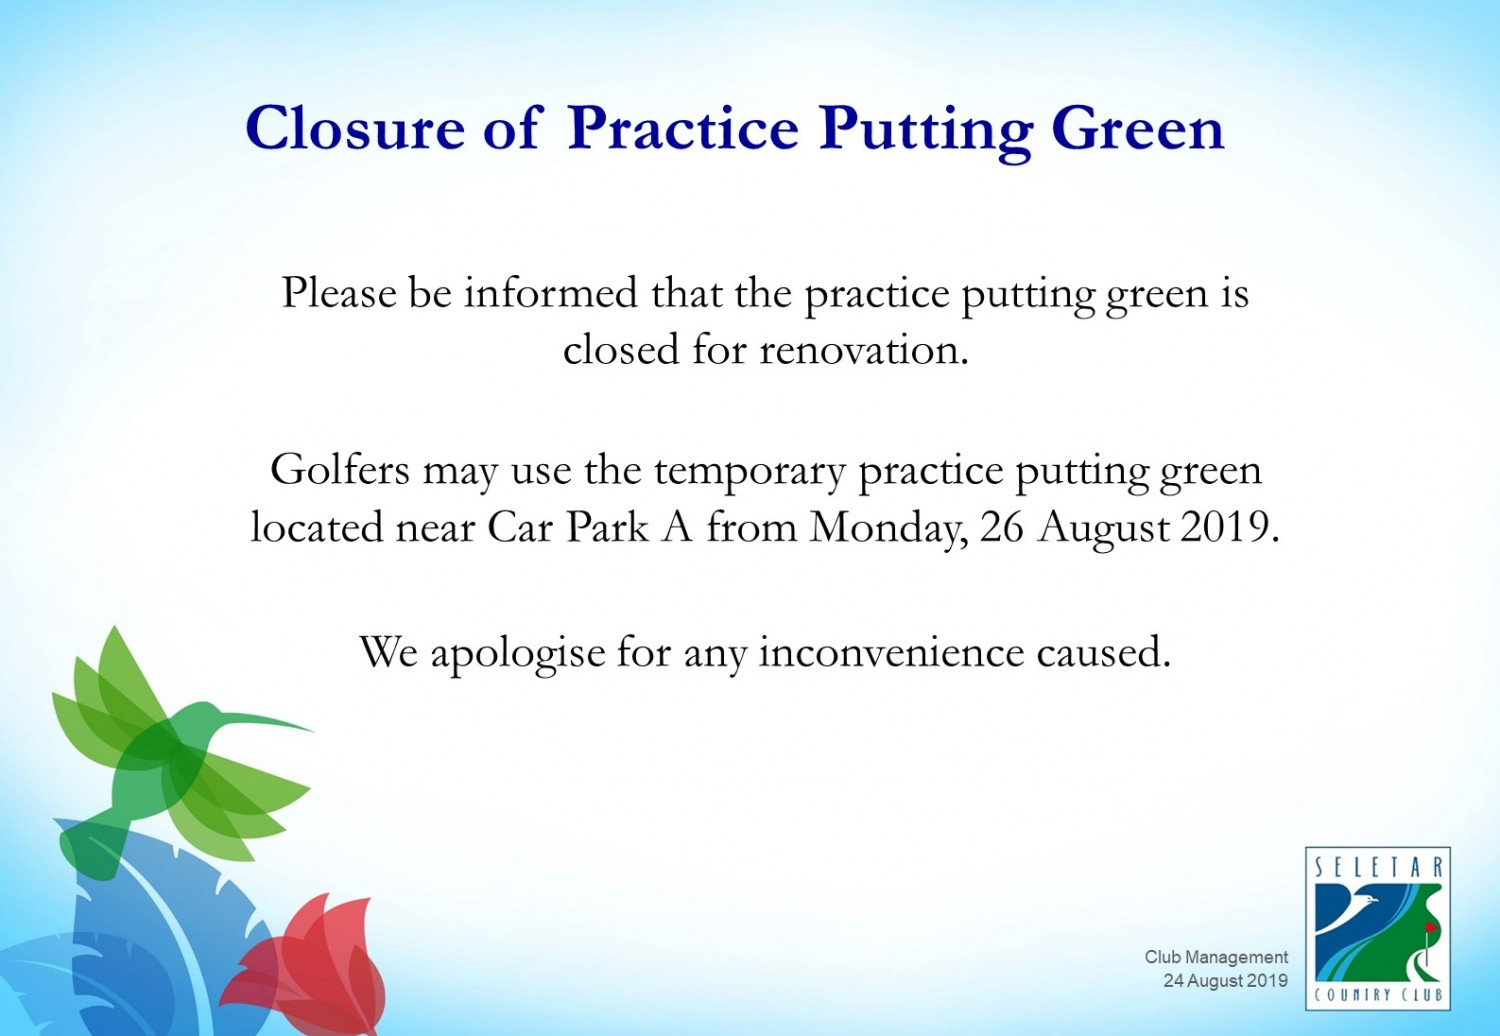 Closure of Practice Putting Green